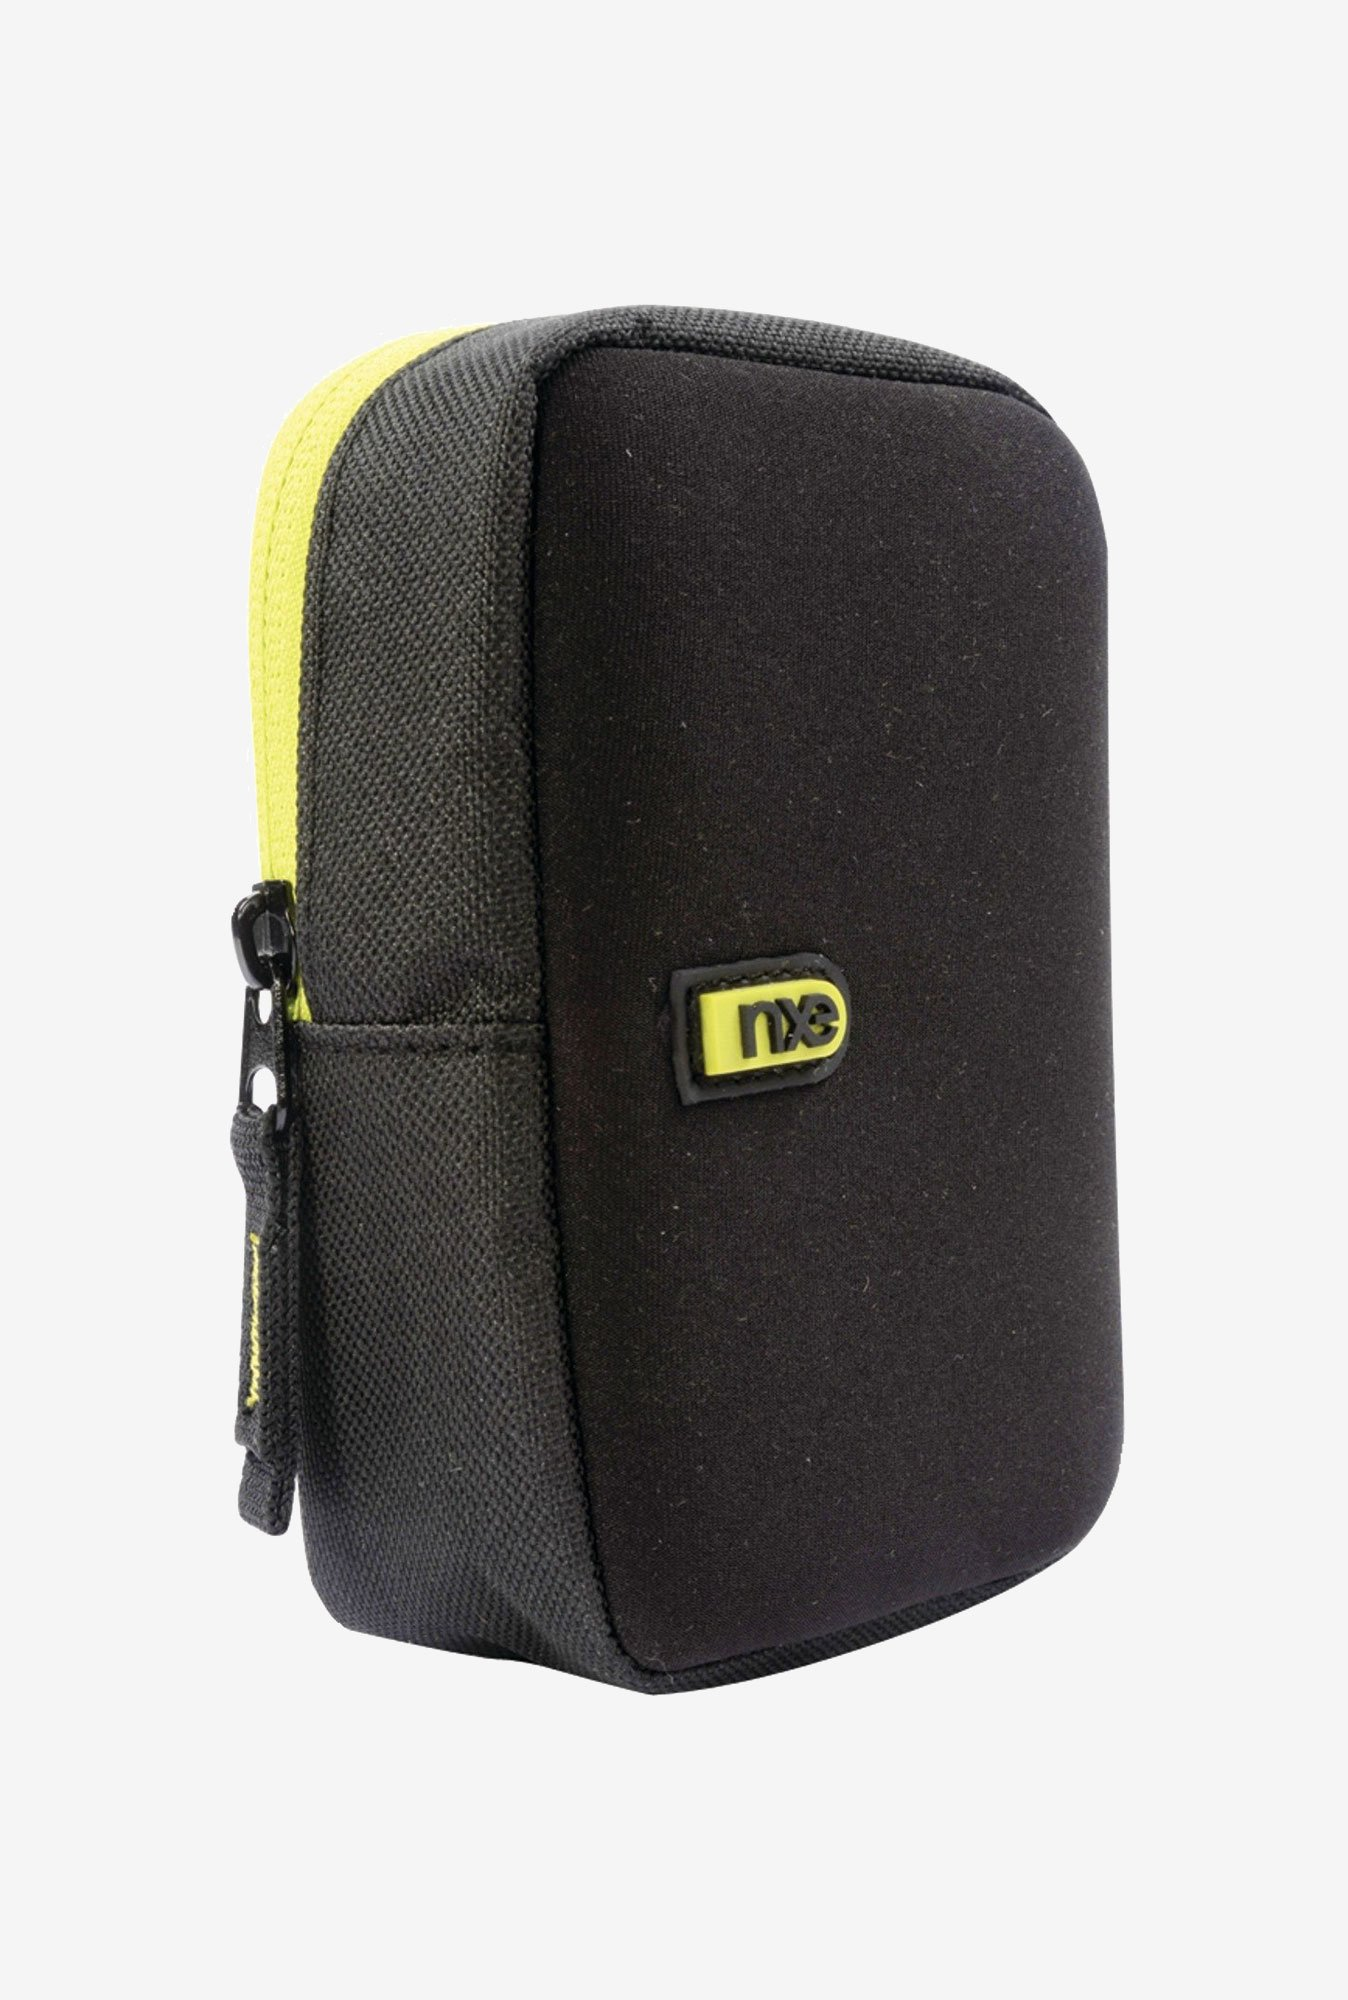 "Nxe ""Kauai"" Entry Level Carry Solution (Black & Yellow)"